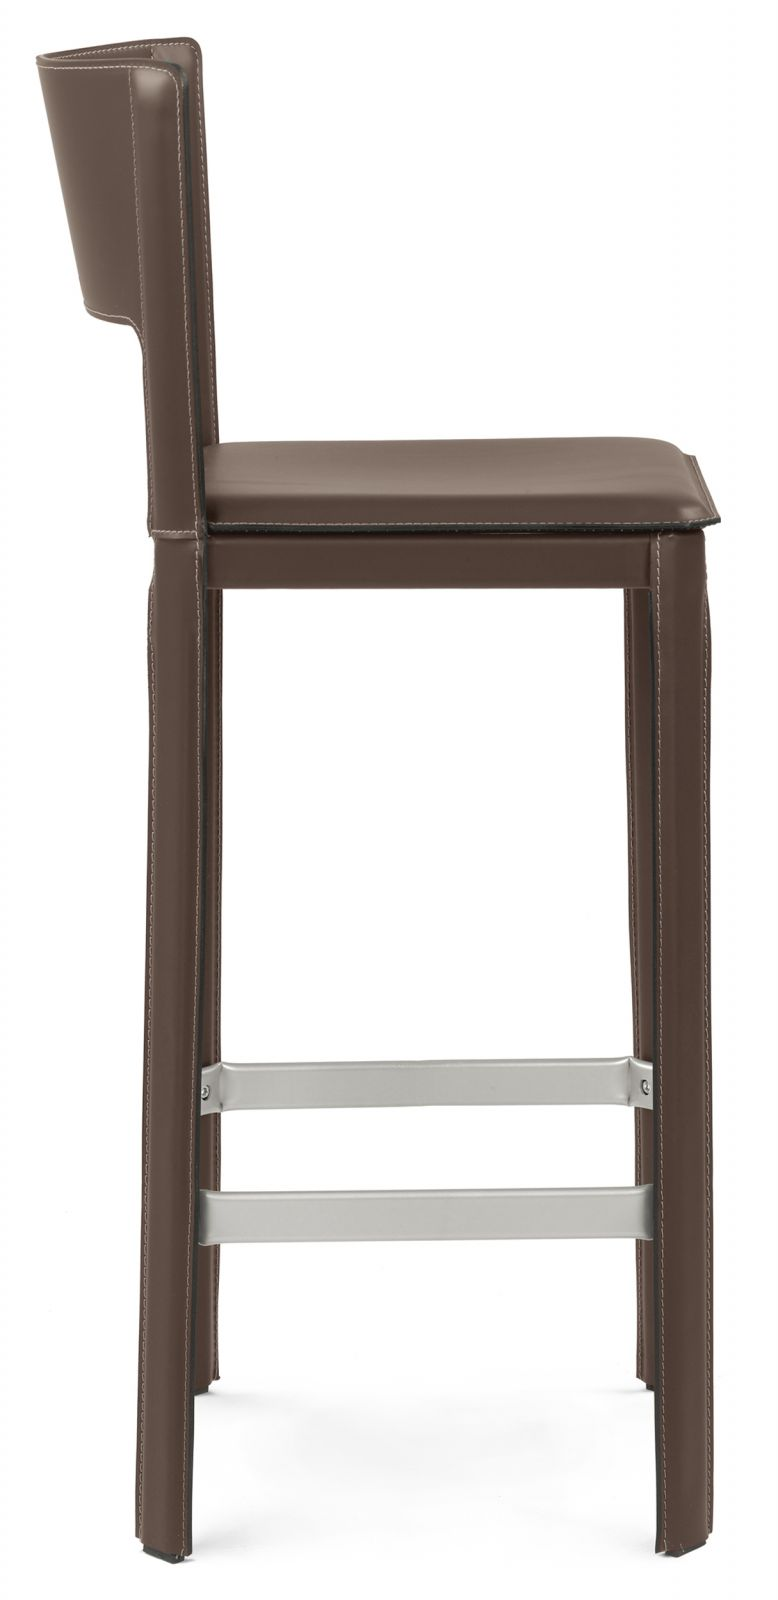 modern-bar-stools-Italian-furniture-large (29).jpg